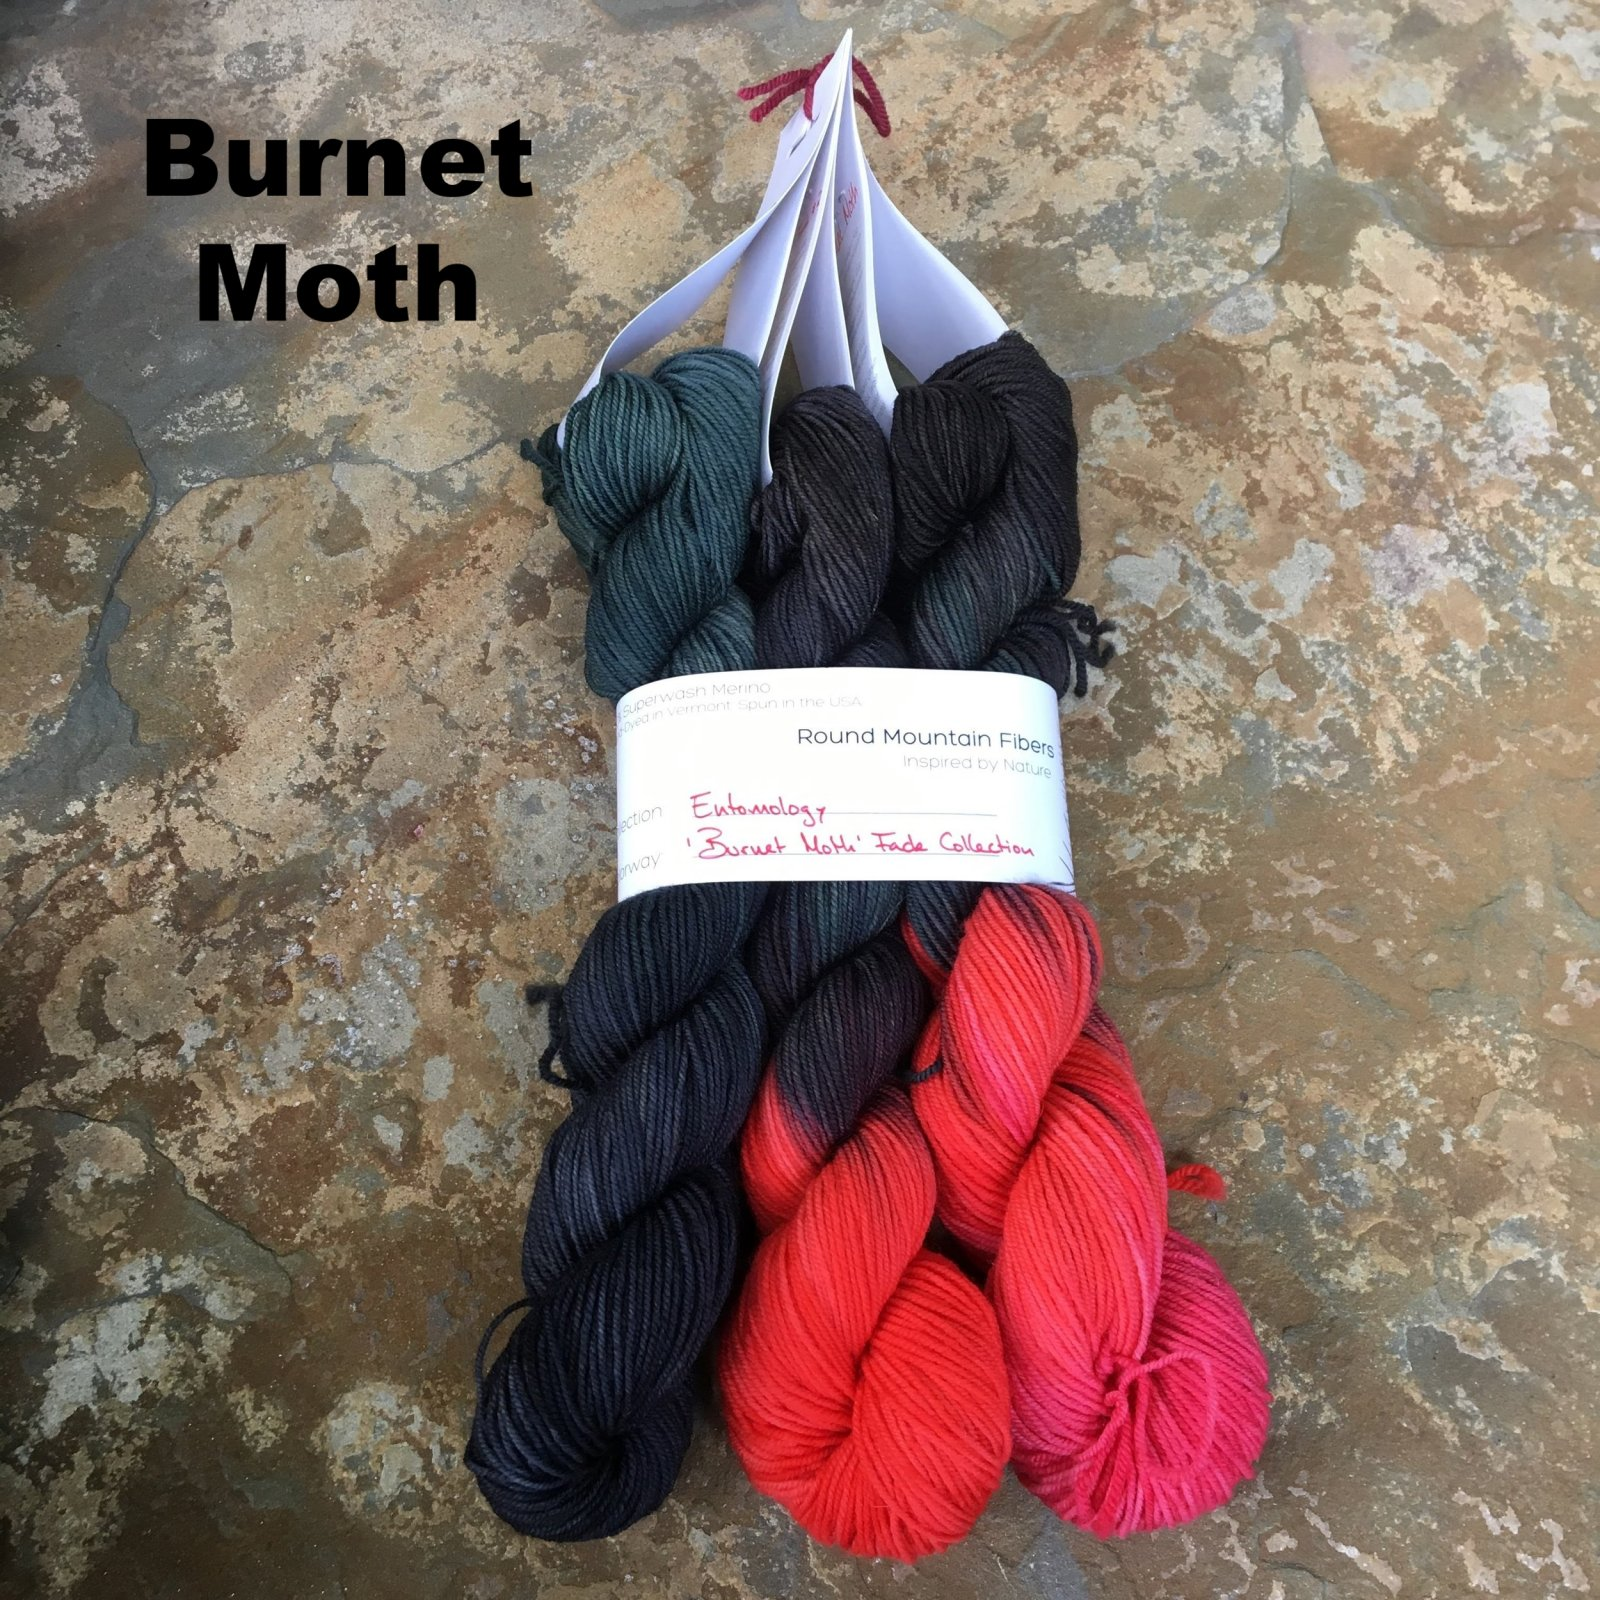 Entomology Fade Collection (Round Mountain Fibers)